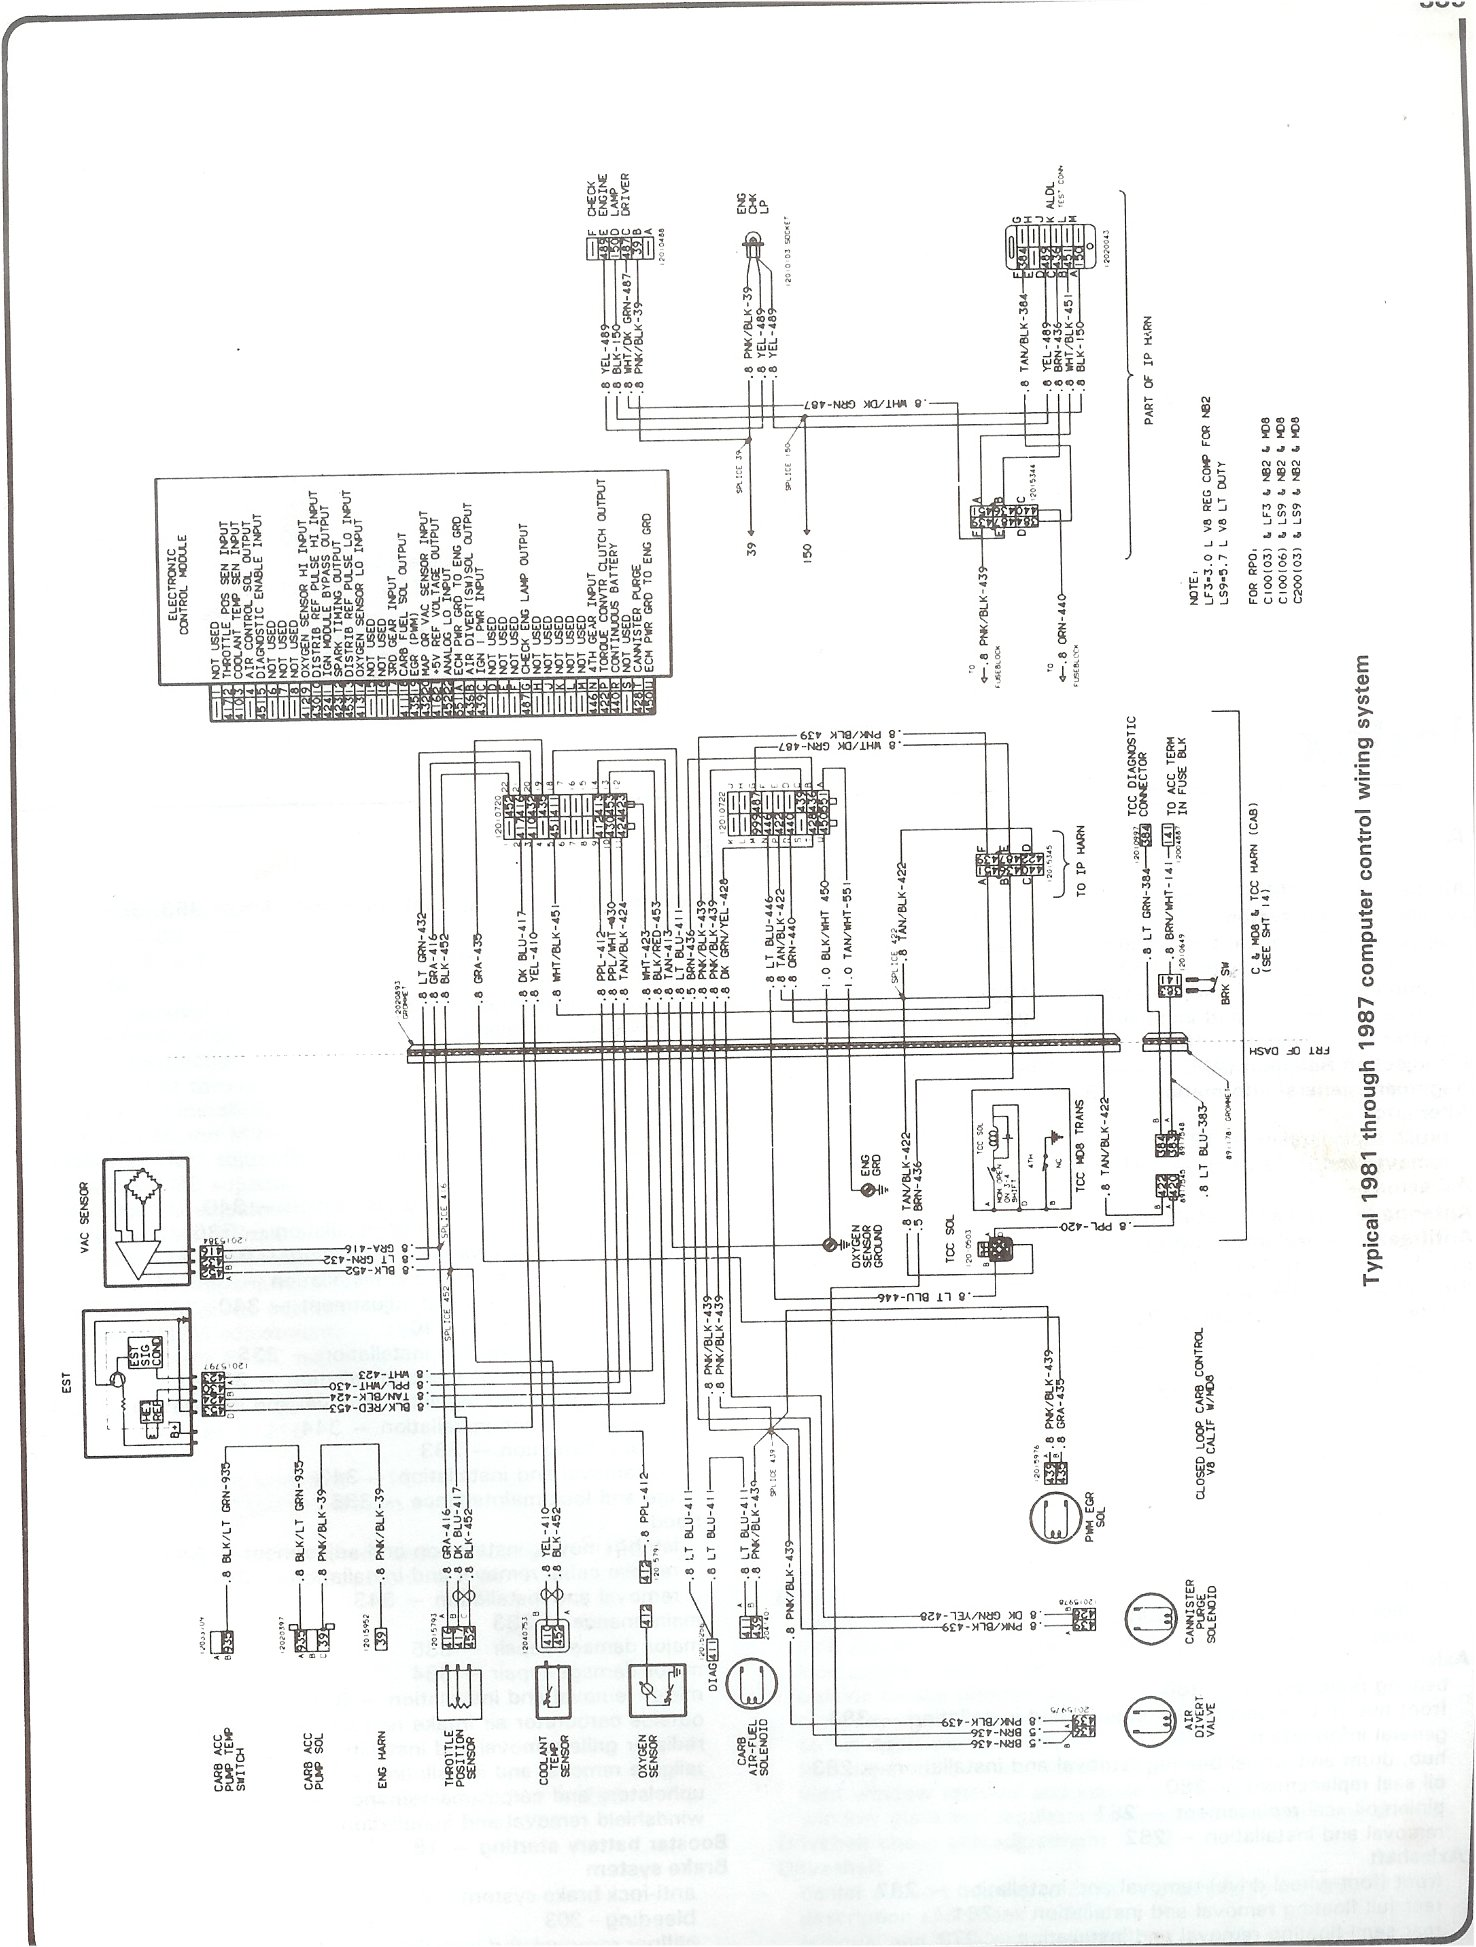 81 87_computer_control_wiring complete 73 87 wiring diagrams s10 wiring harness diagram at reclaimingppi.co